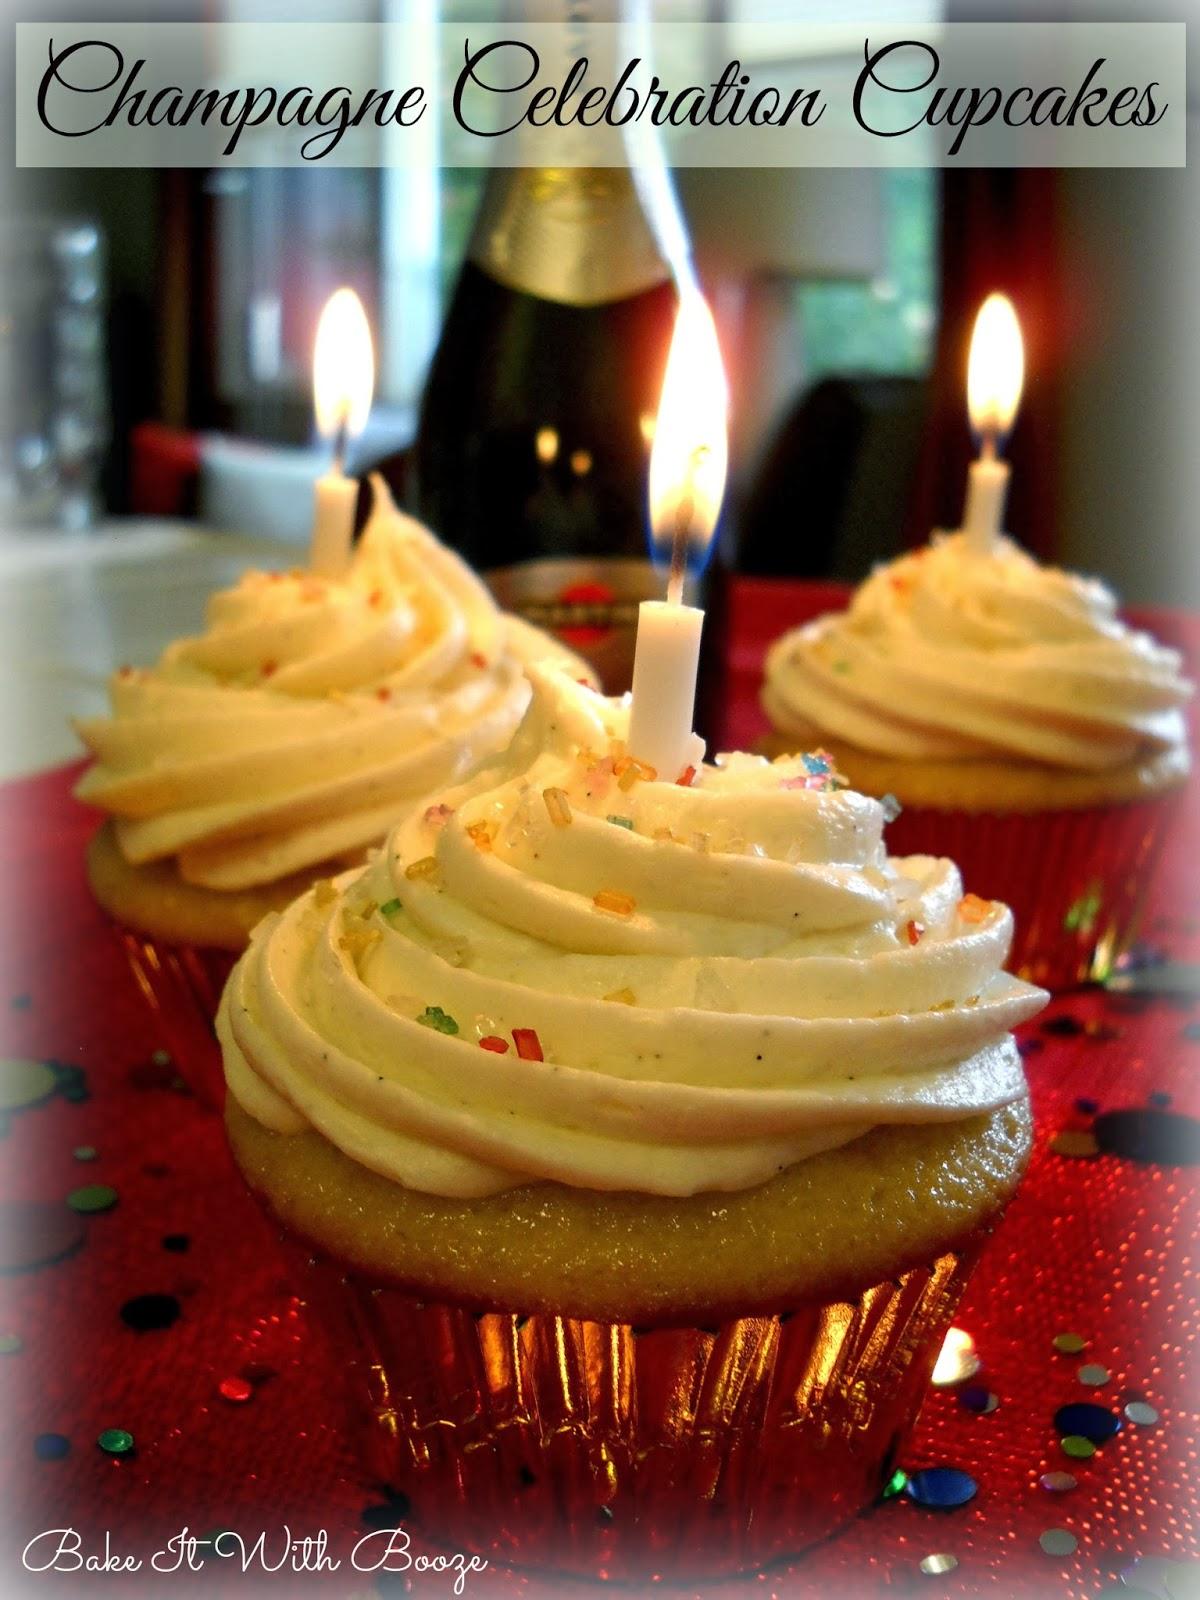 Pretty and festive: Make champagne celebration cupcakes (with vanilla champagne filling)